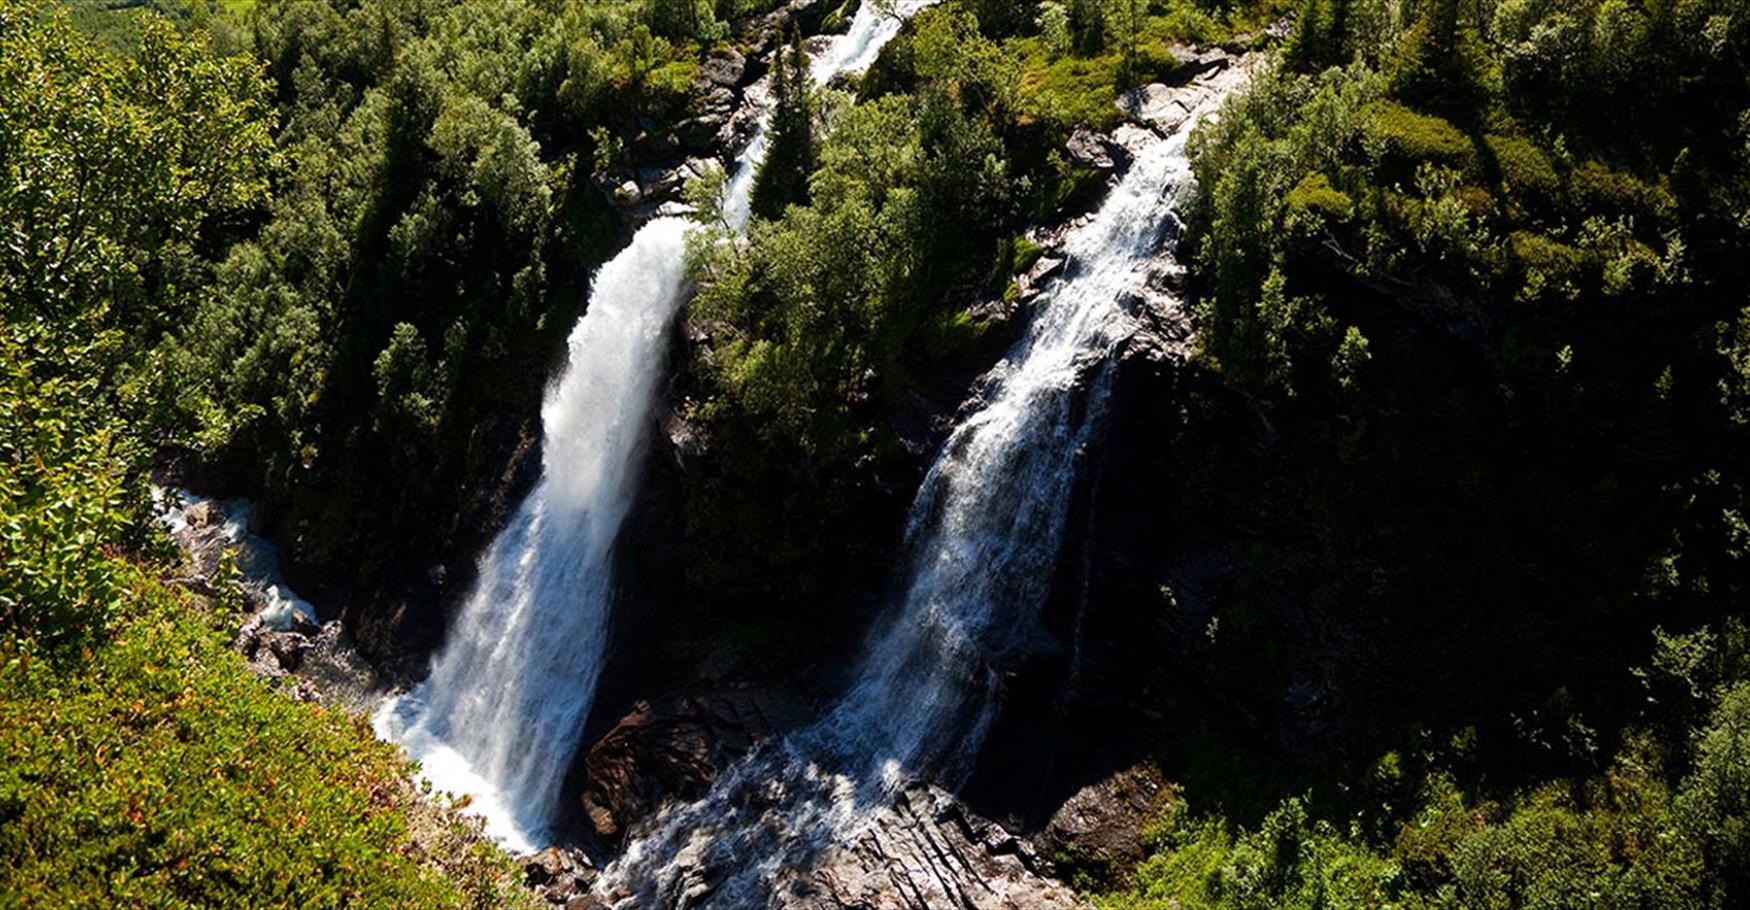 The waterfall Sputrefossen in Vang county.